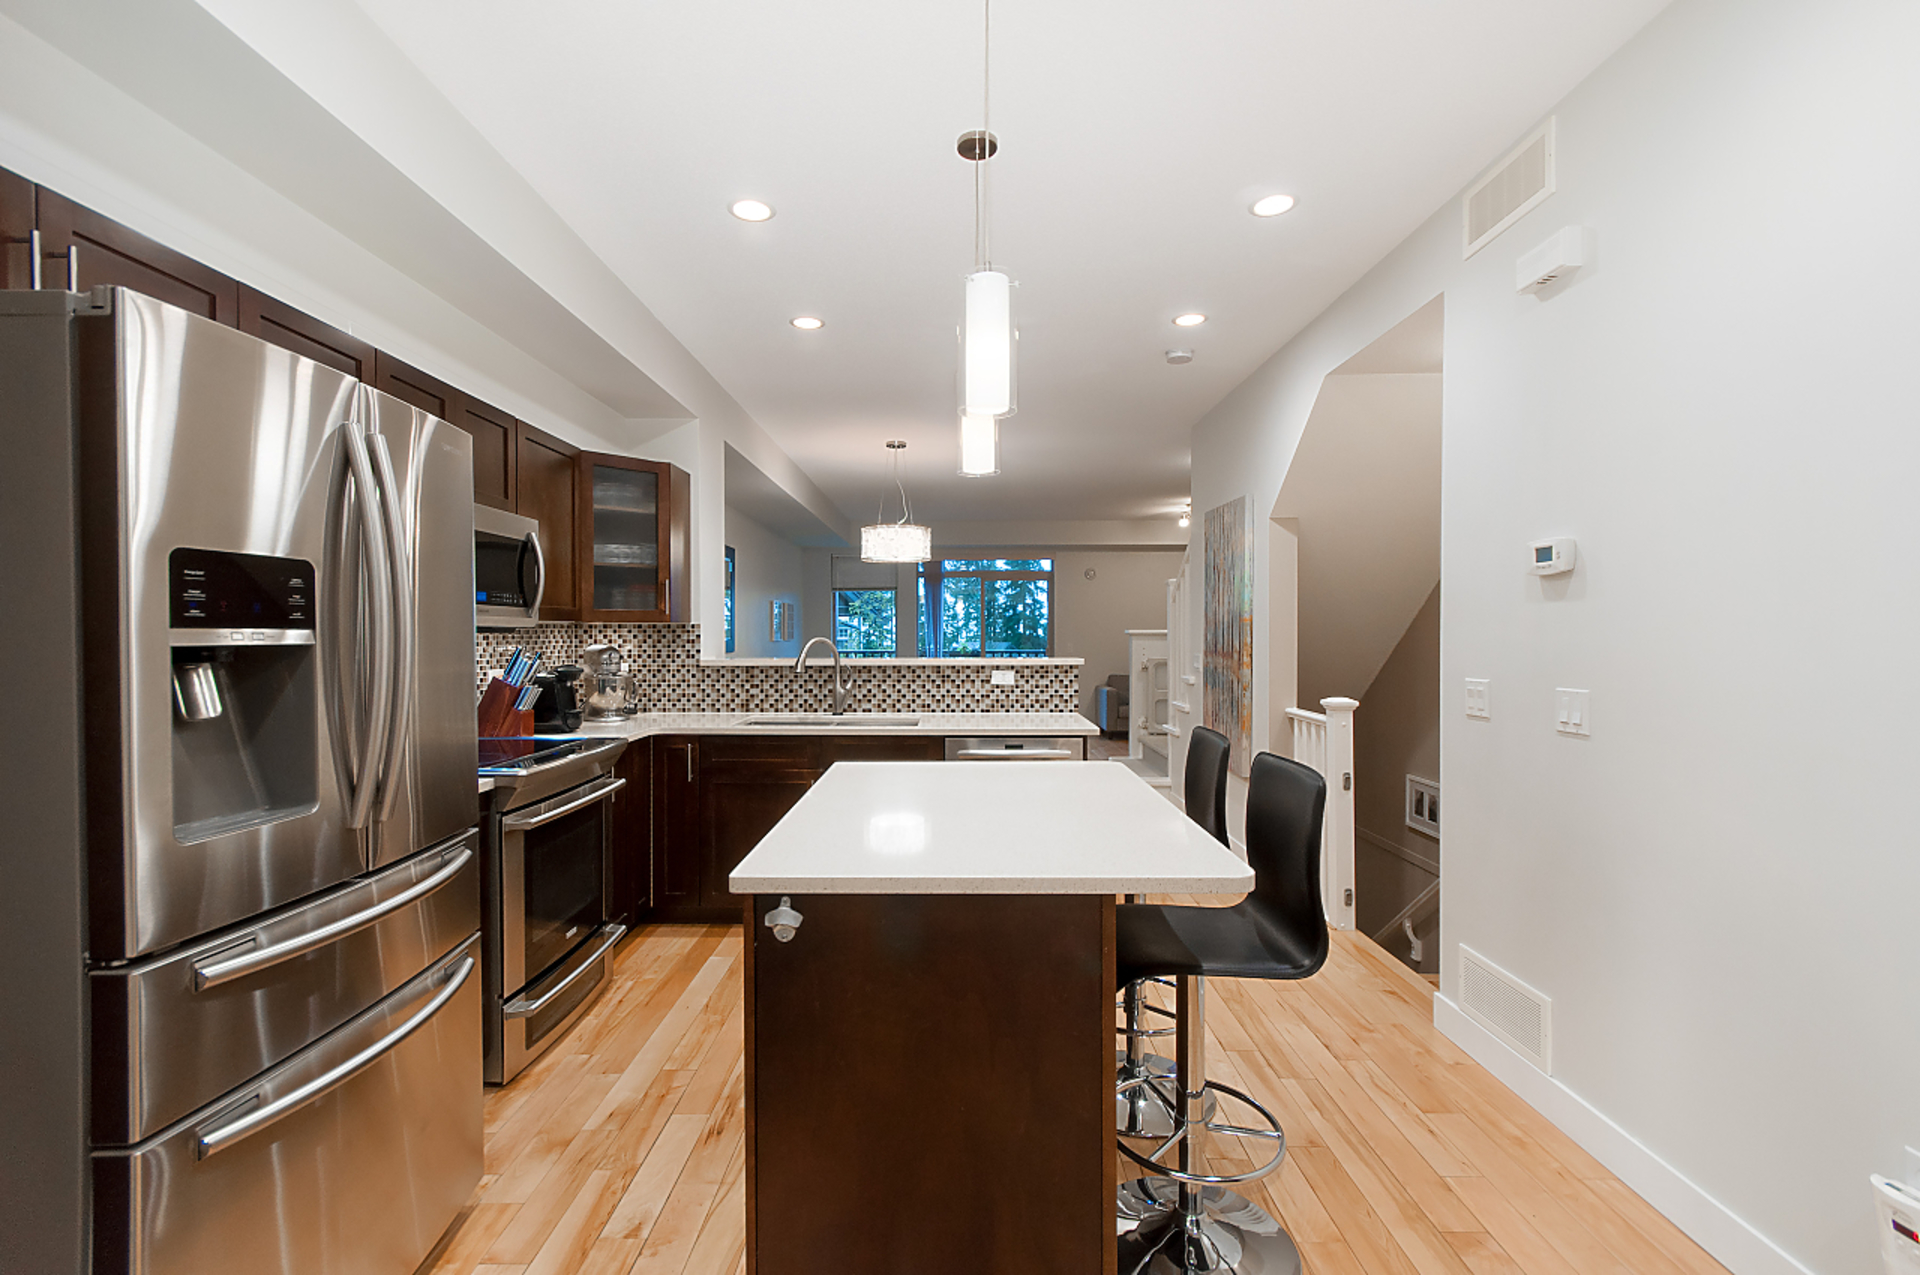 018 at 3 - 55 Hawthorn Drive, Heritage Woods PM, Port Moody